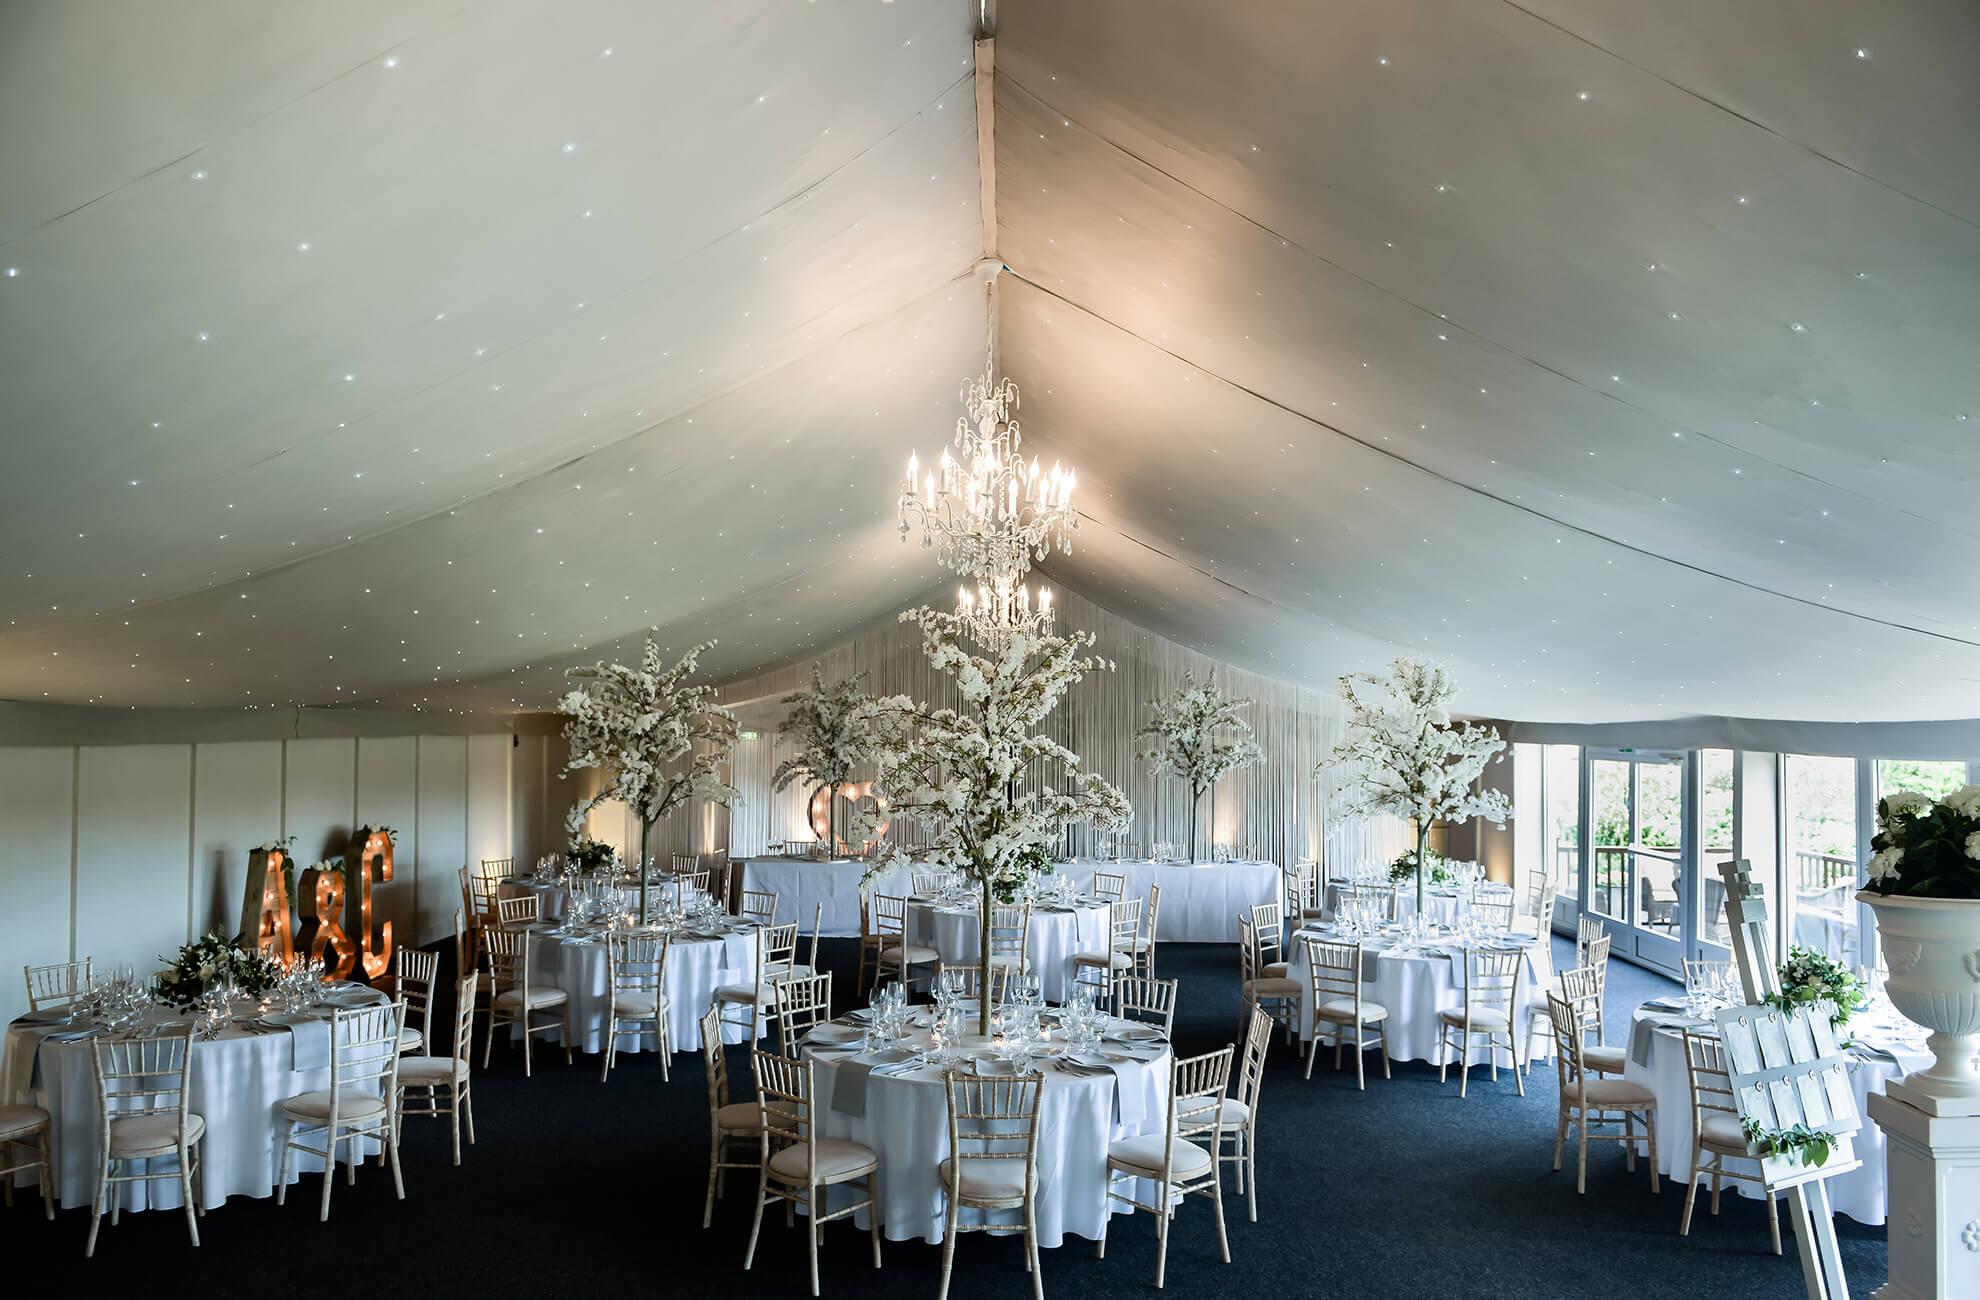 The Pavilion at Combermere Abbey is decorated with white blossom trees for an elegant wedding breakfast